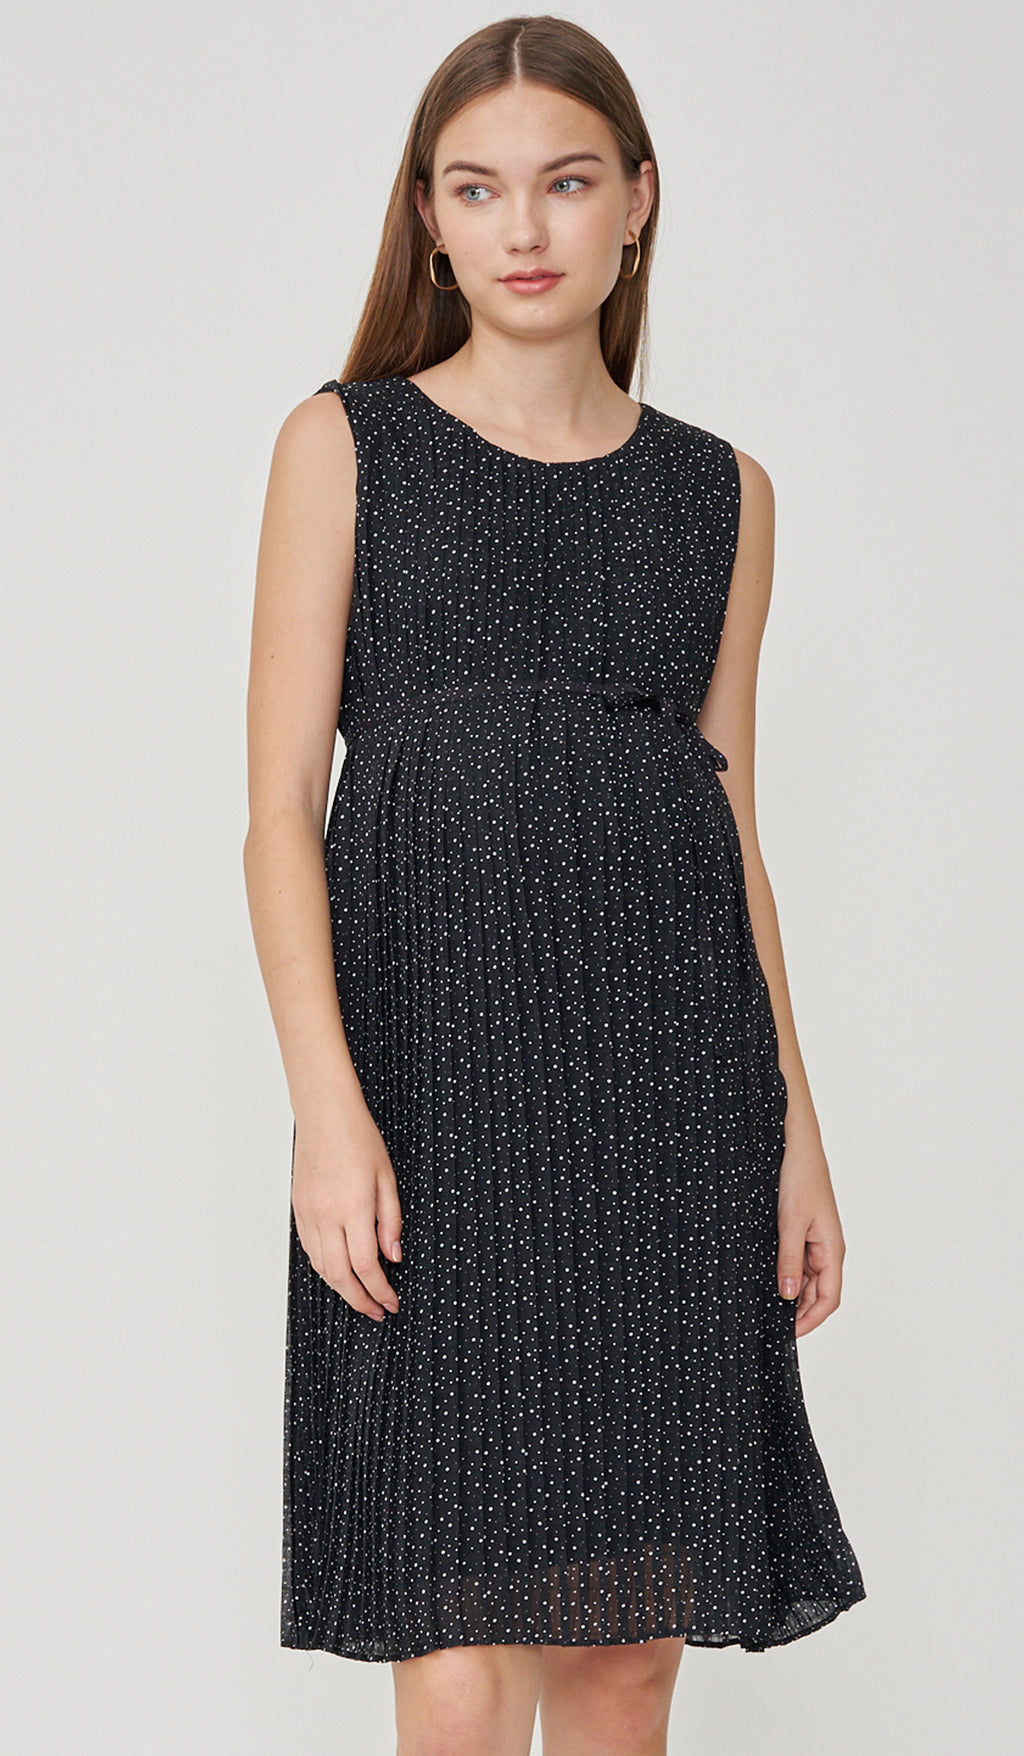 SALE - LAILA POLKADOT PLEATS NURSING DRESS BLACK